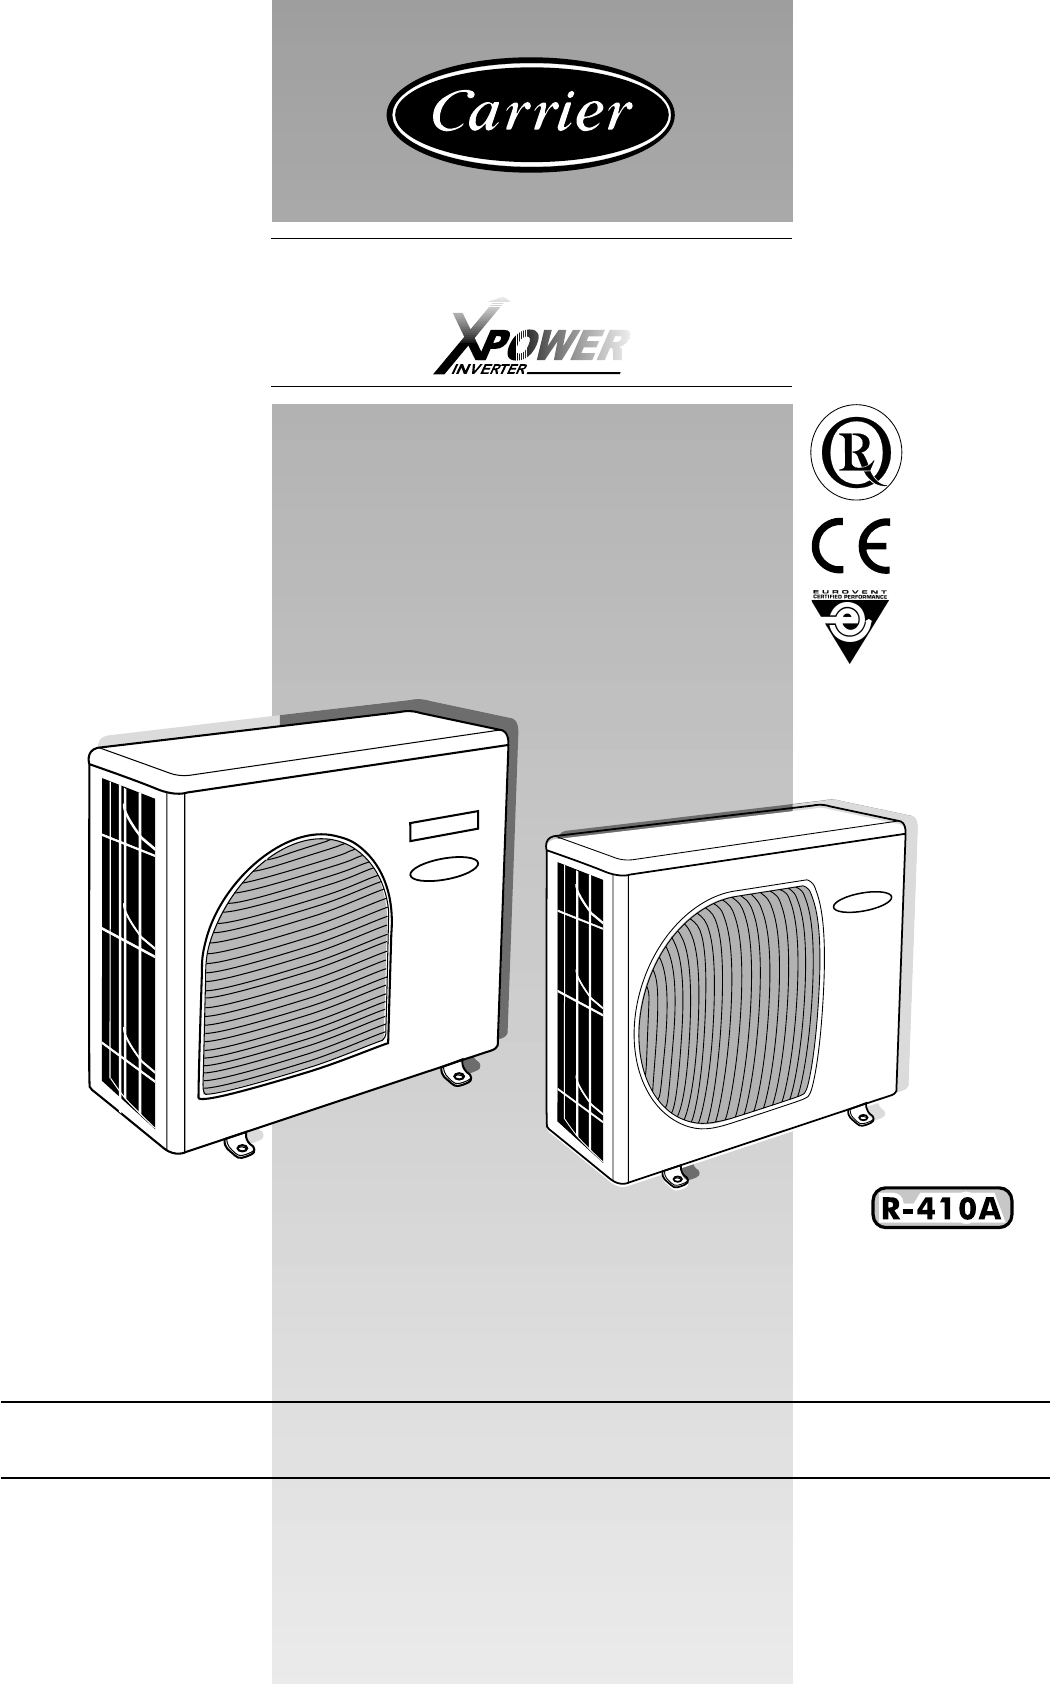 carrier heat pump 38vyx050 user guide manualsonline com Carrier Heat Pump Package carrier infinity heat pump owner's manual